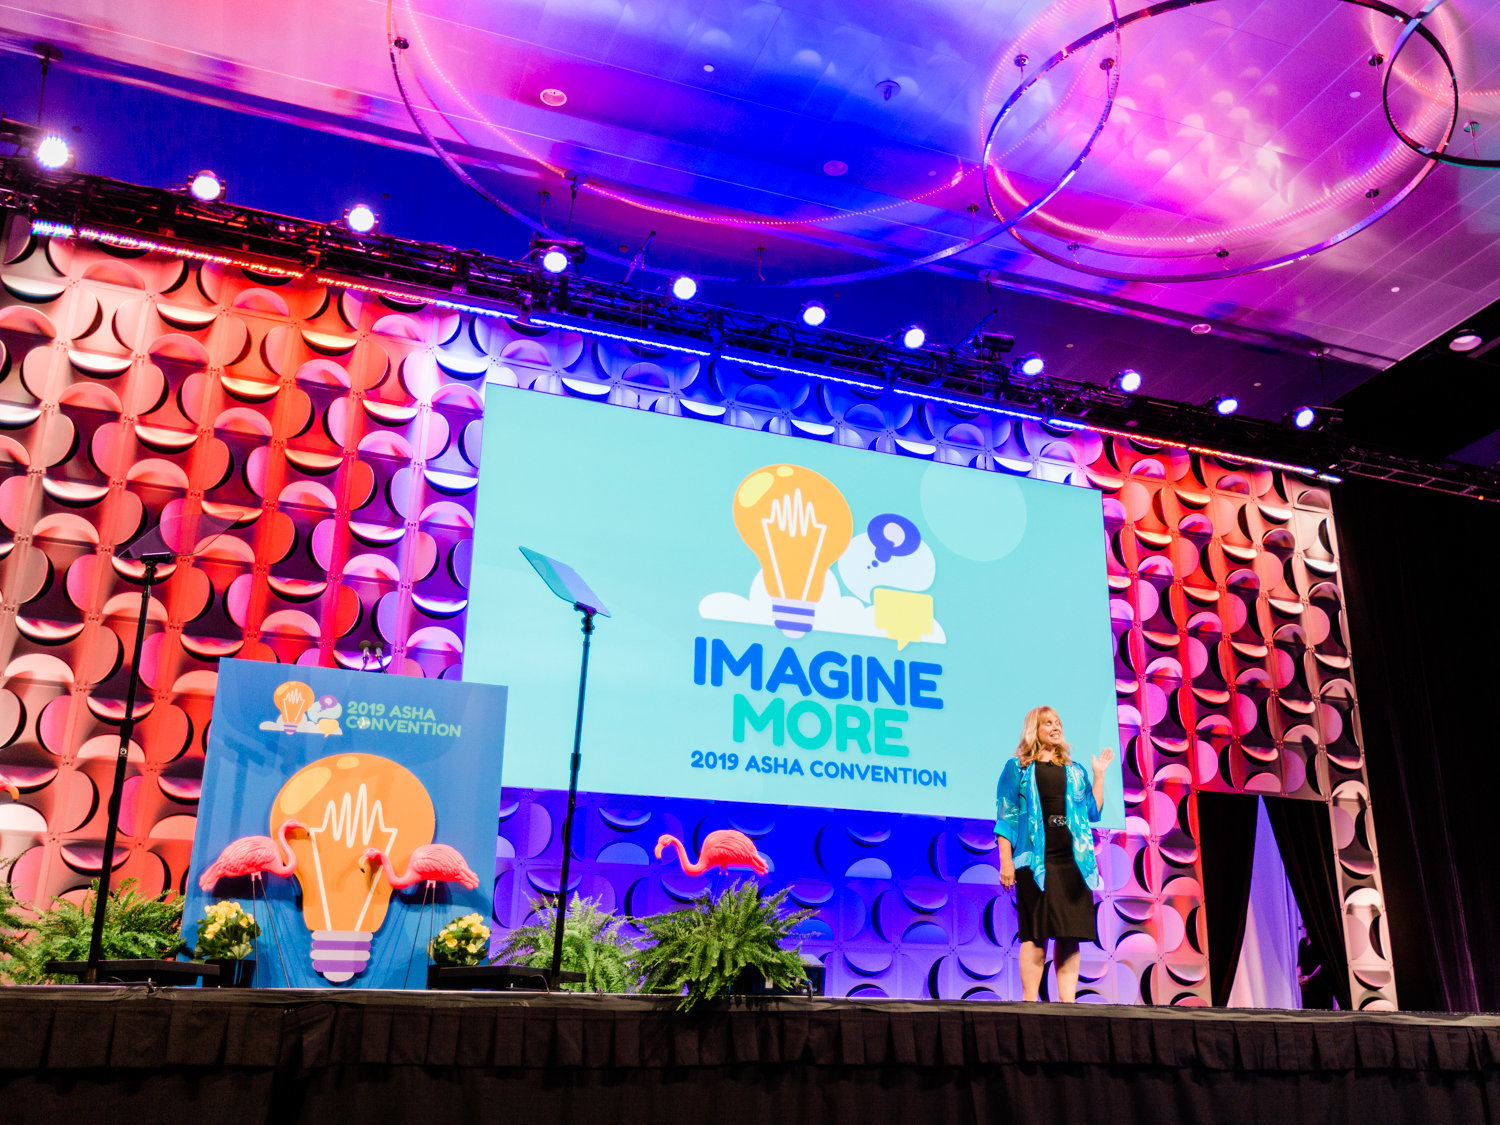 Woman on a colorful stage at a conference giving a speech